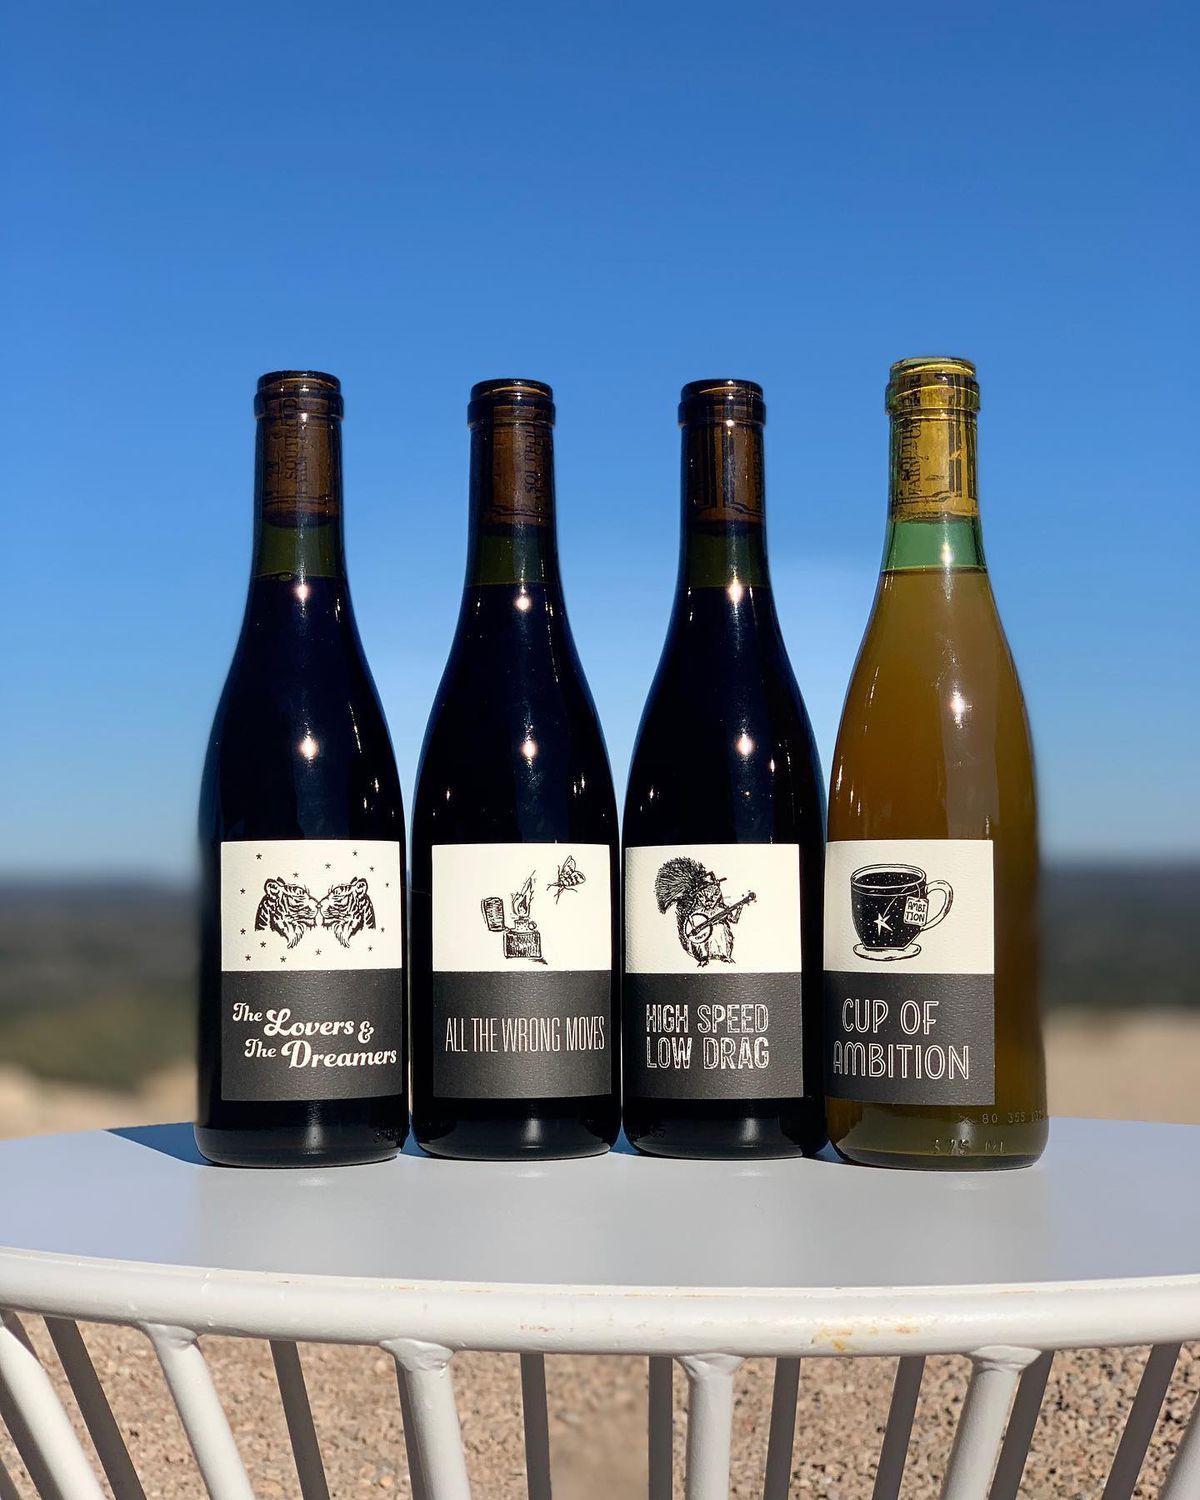 Wines from Southold Farm & Cellar